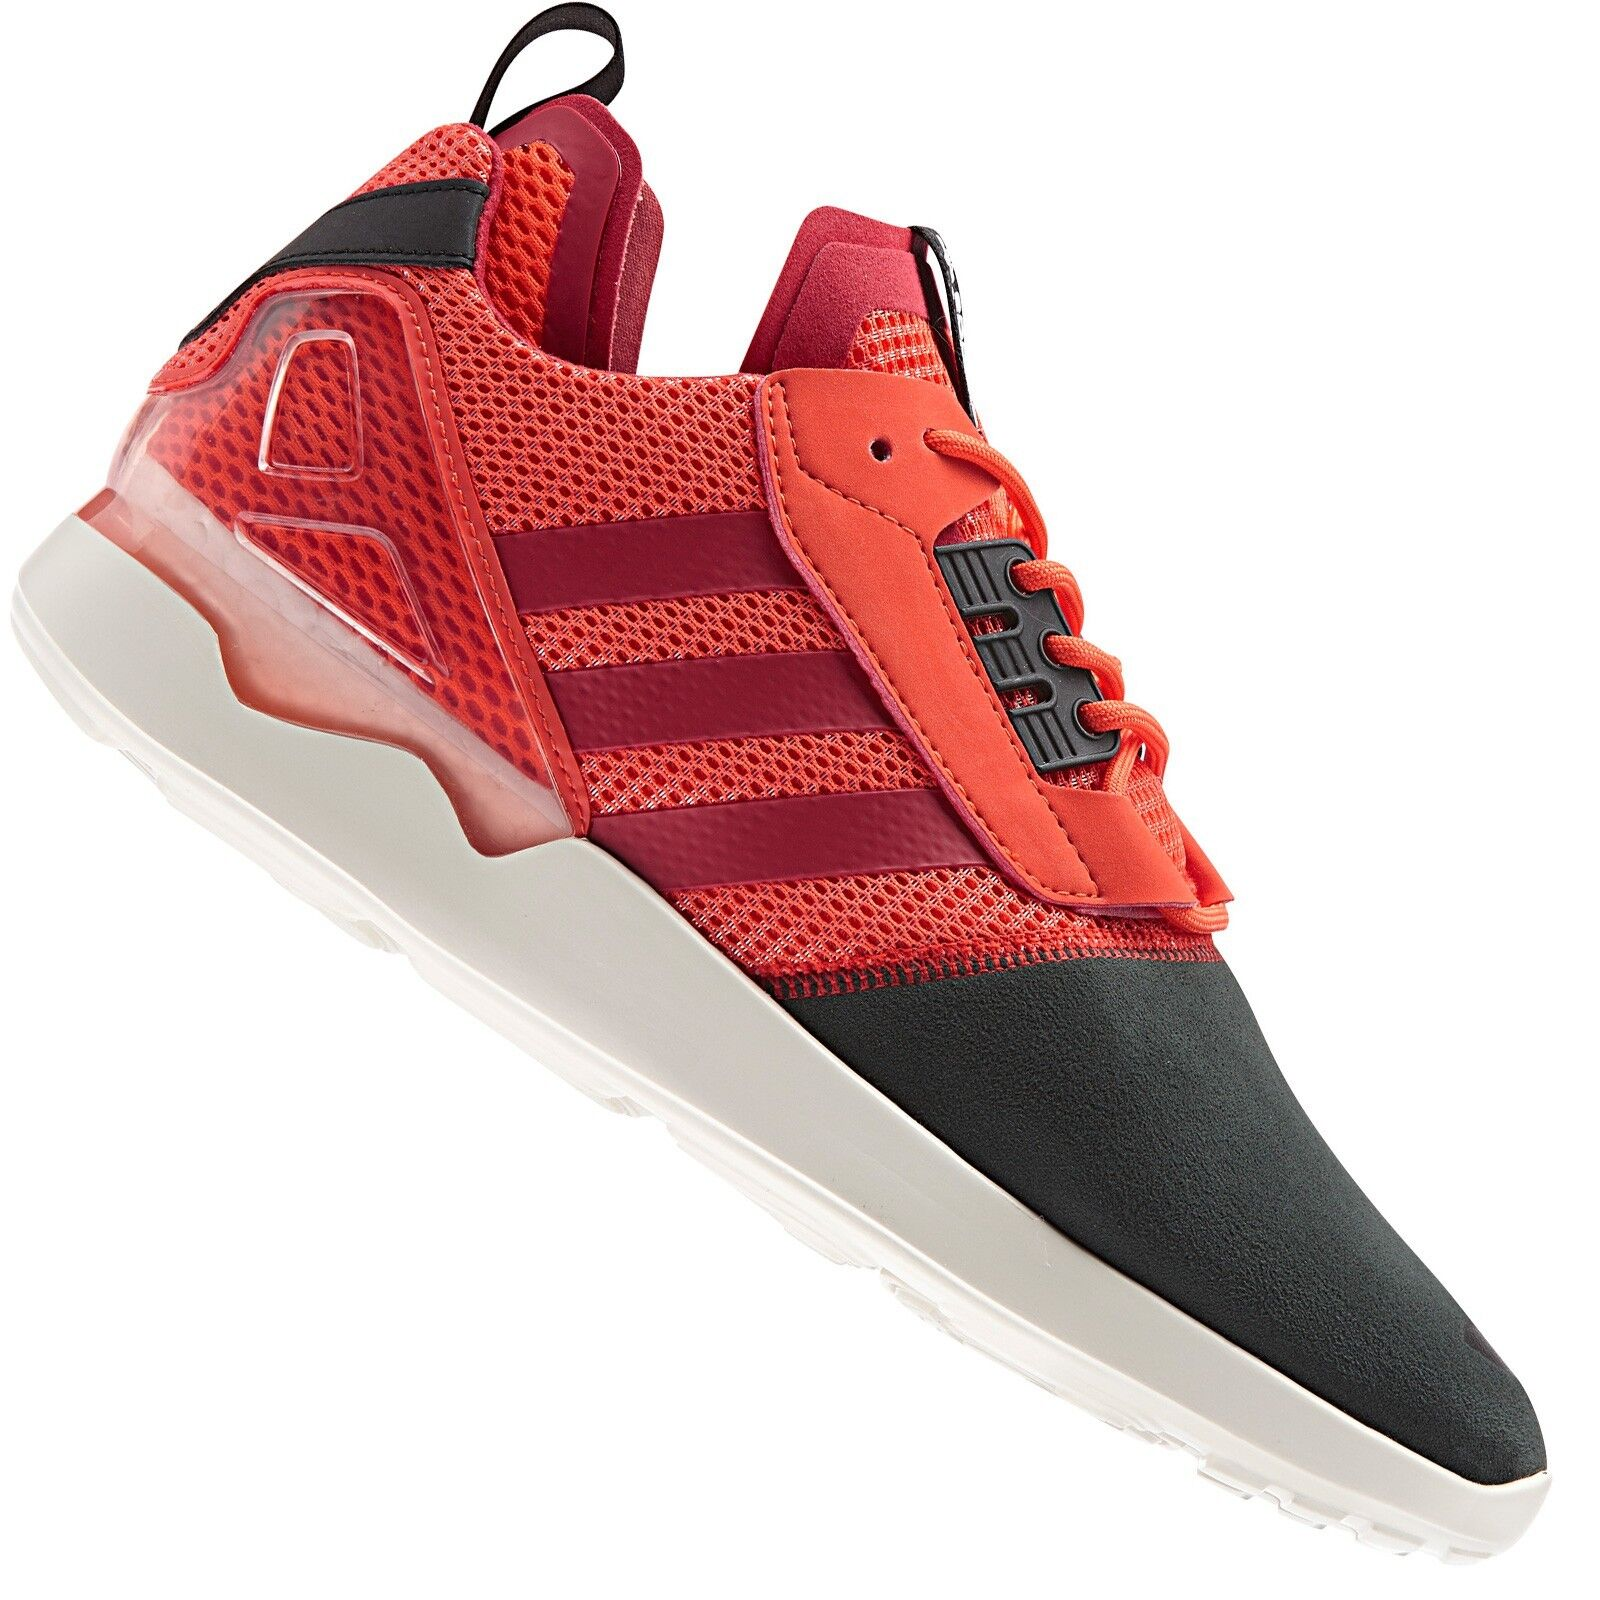 Adidas Originals ZX 8000 Boost running zapatillas deporte Zapatos Zapatos Zapatos  rojo 41 1/3 7ed7cd